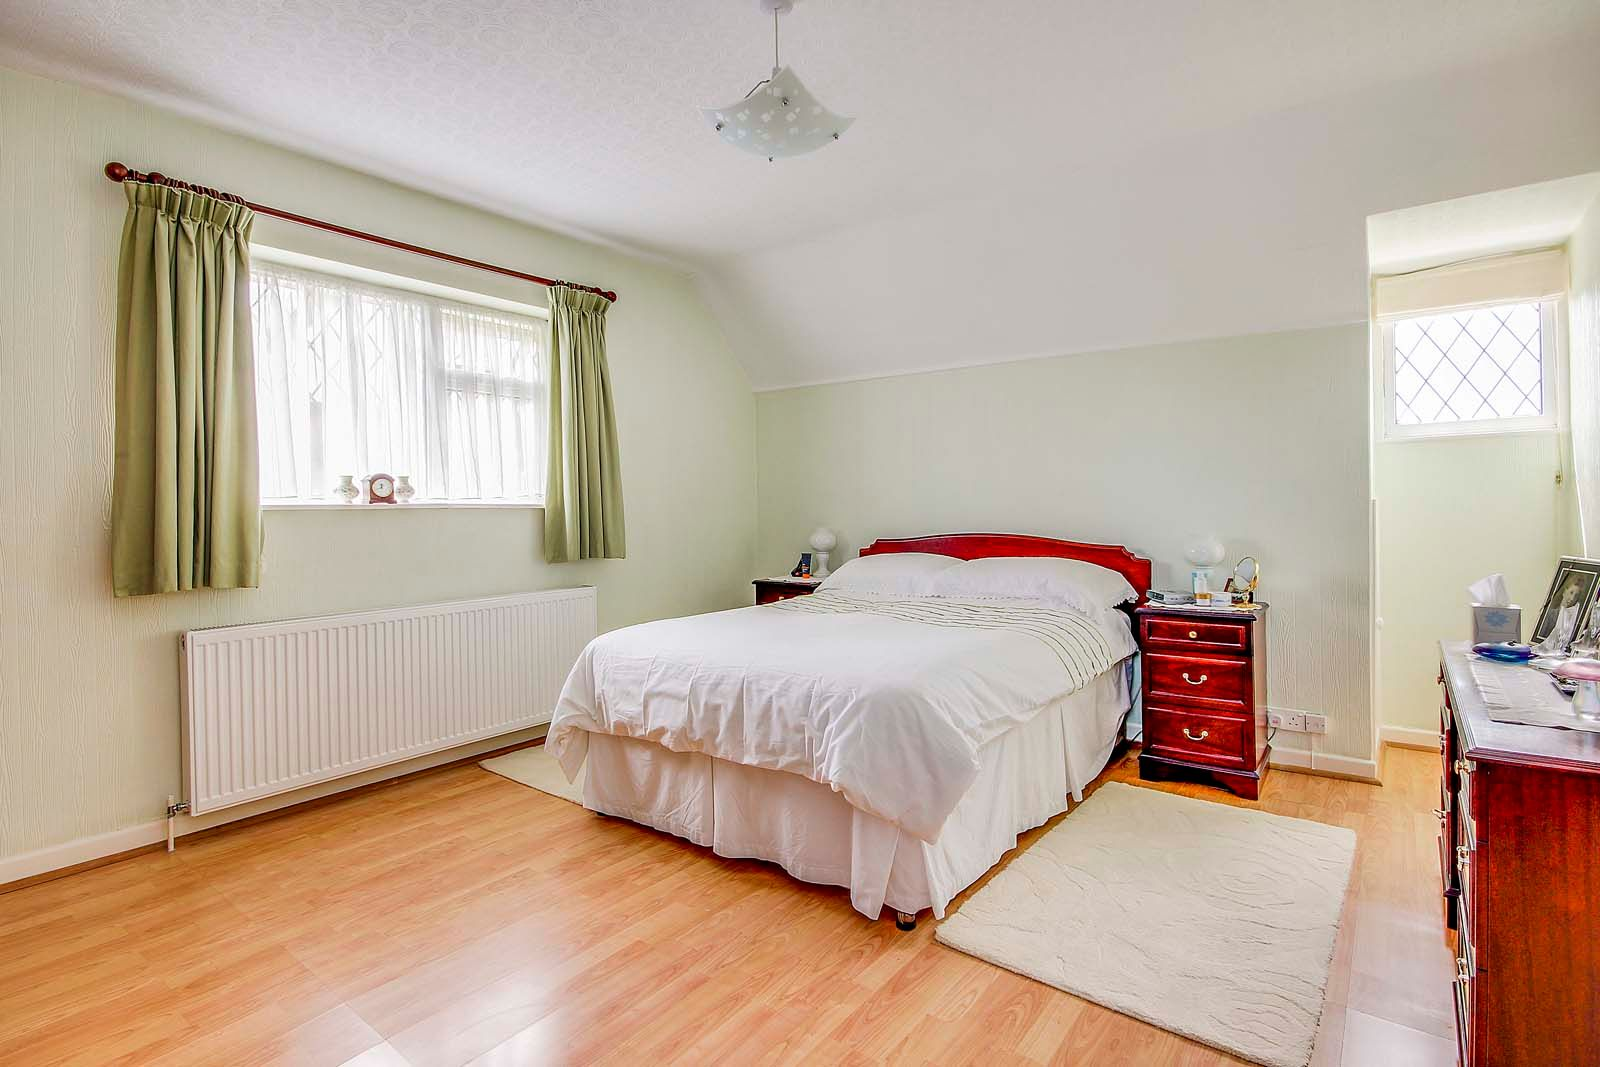 3 bed House for sale in Rustington - Bedroom (Property Image 4)